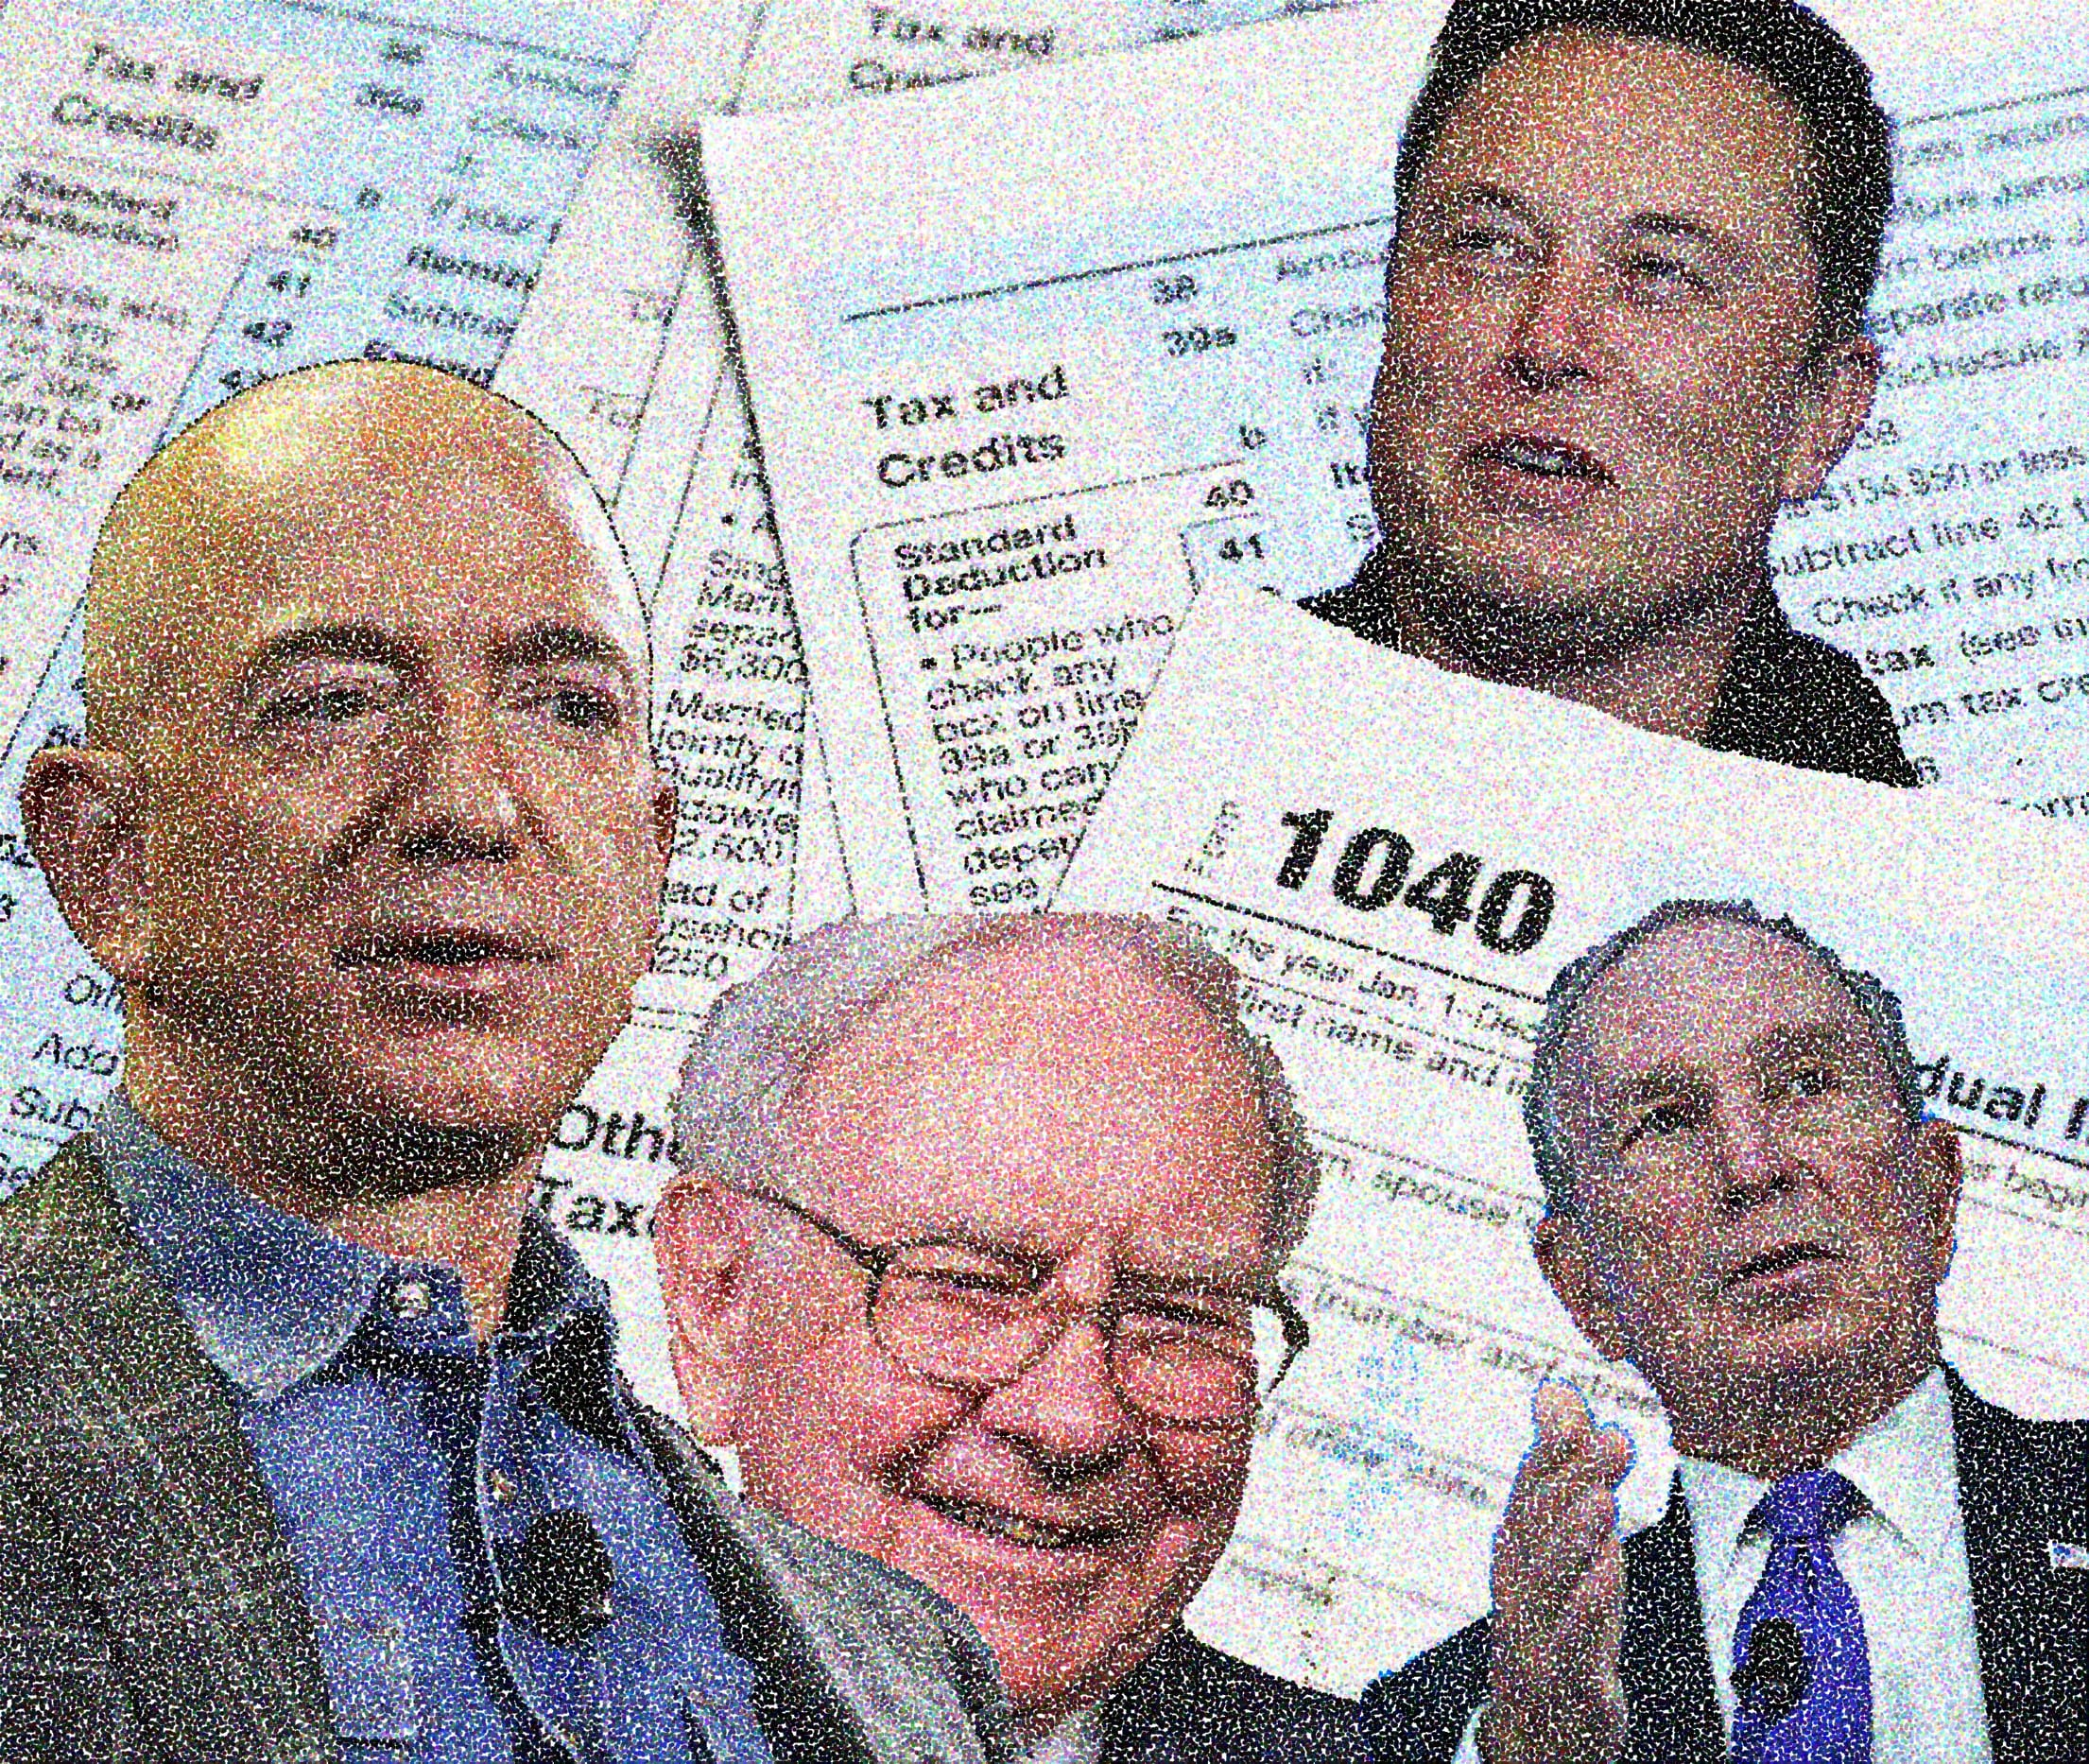 The secret IRS files: Trove of never-before-seen records reveals how the wealthiest avoid income tax